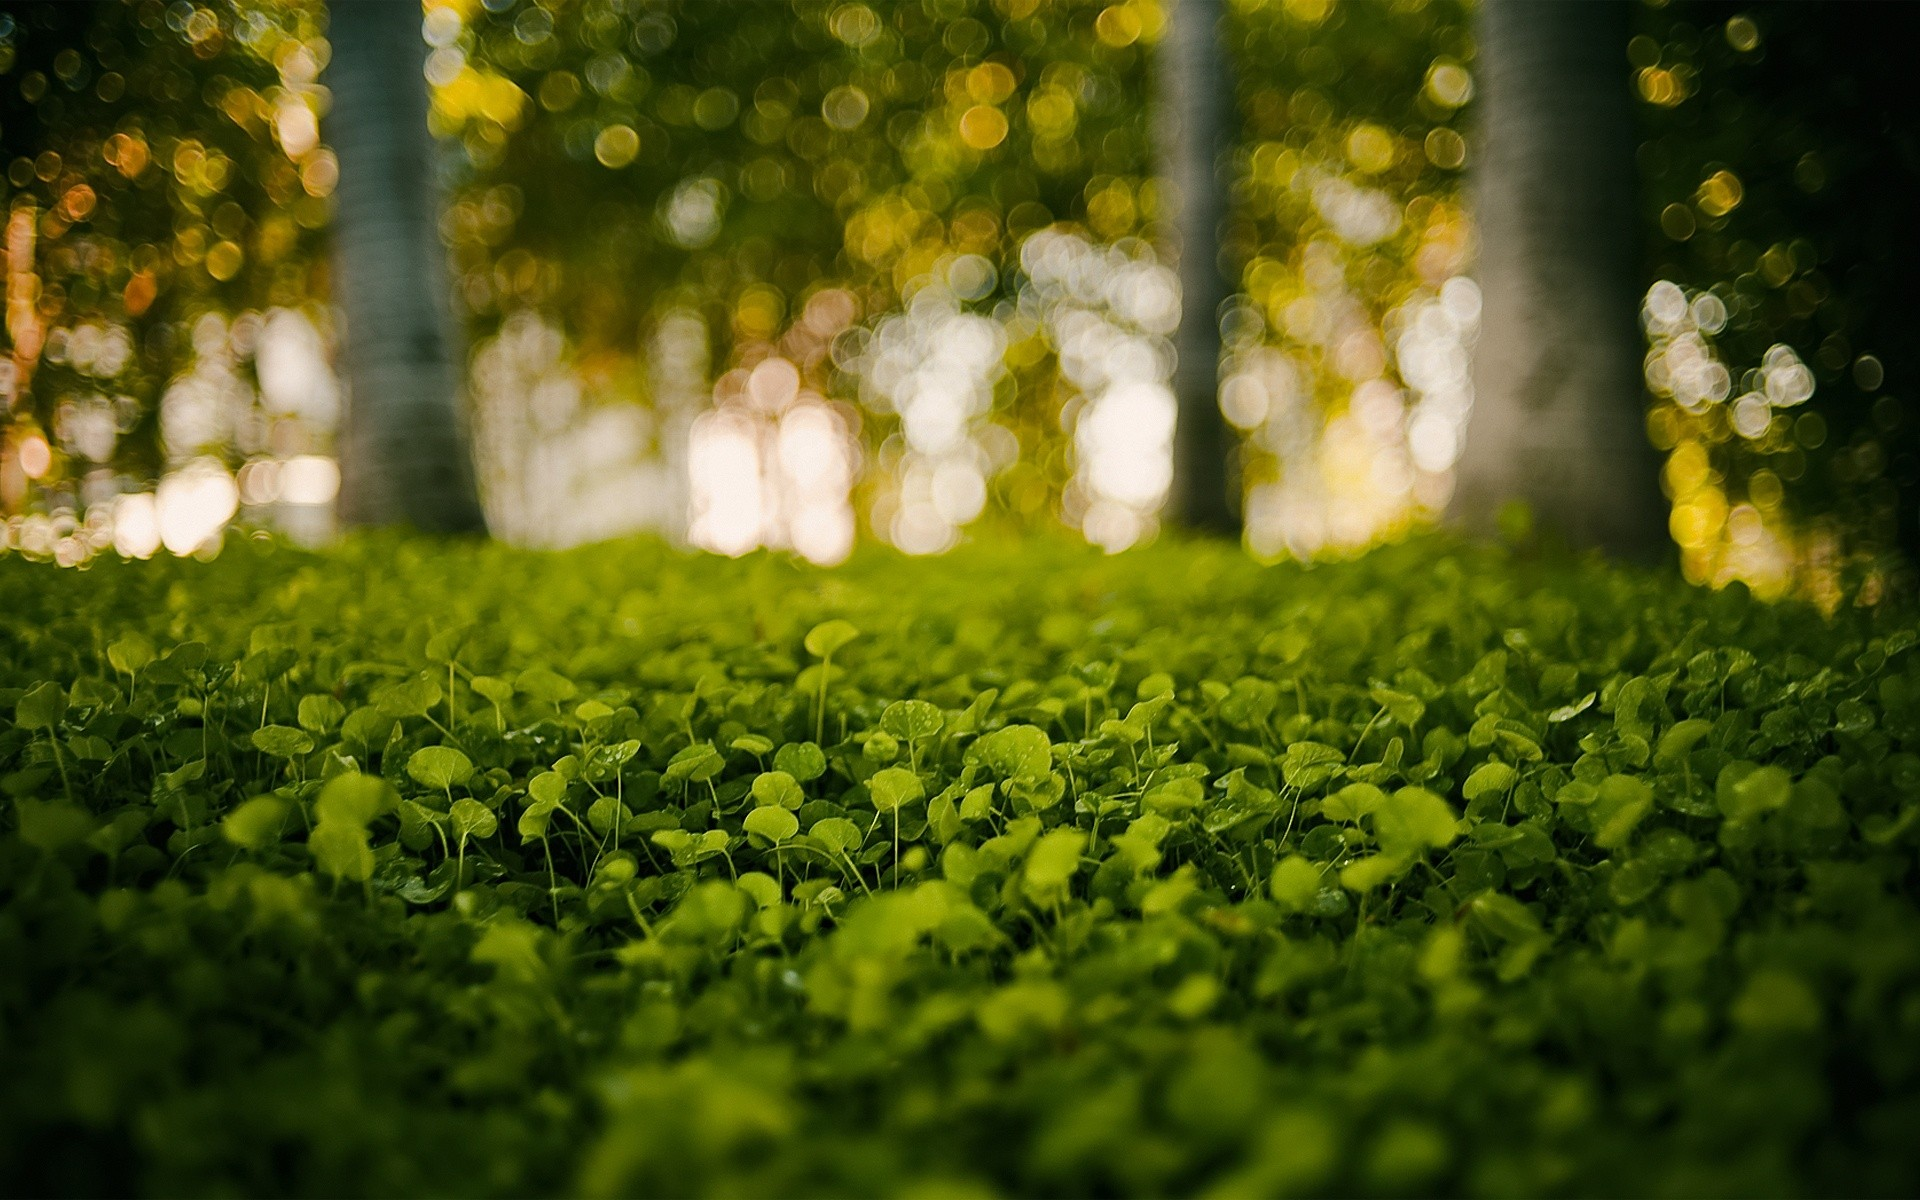 Short Cool Quotes Wallpaper Daily Wallpaper Green Forest I Like To Waste My Time